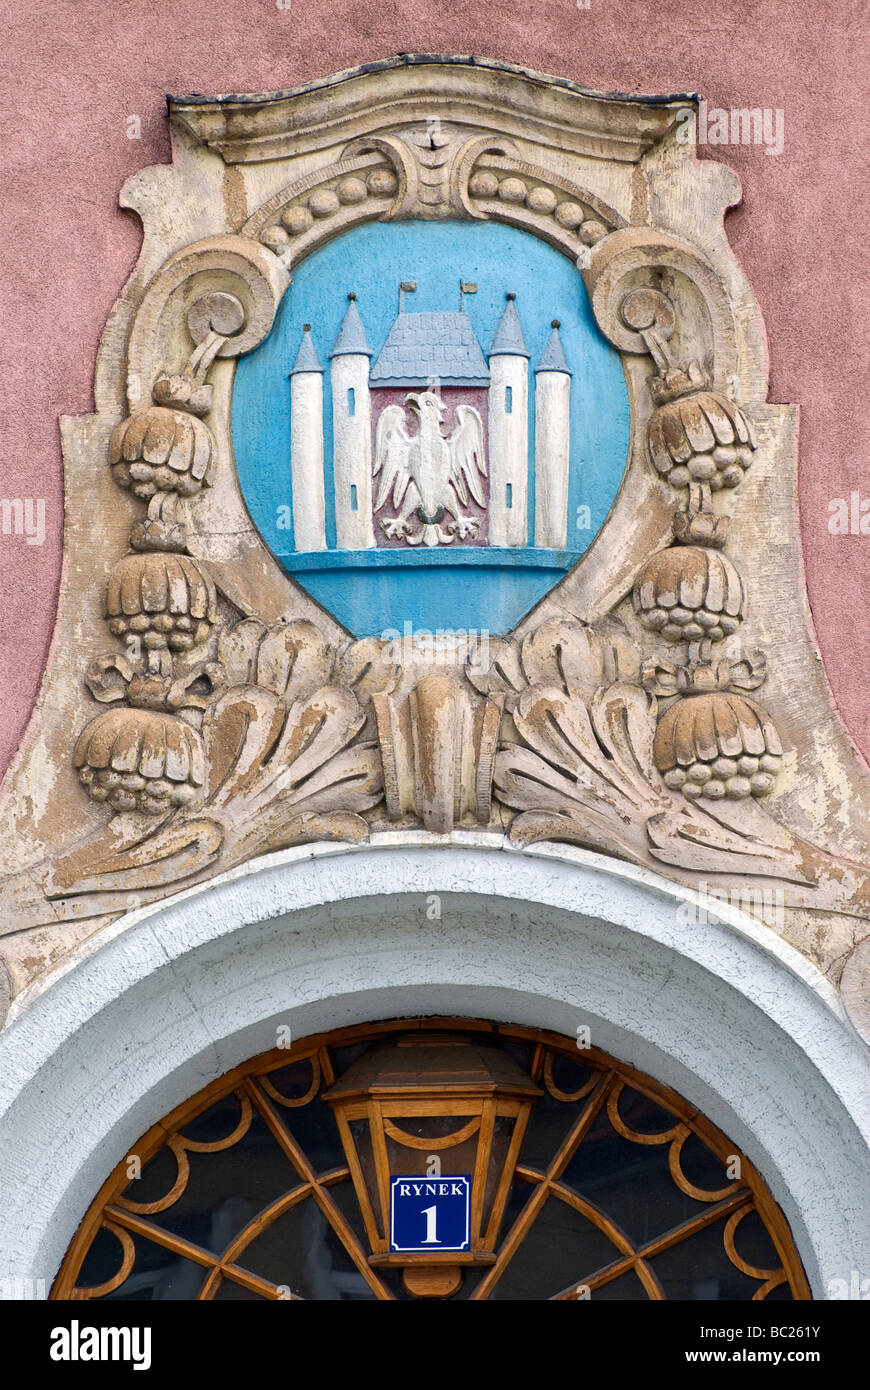 Cartouche with coat of arms of town at Ratusz Town Hall in Międzyrzecz Lubuskie Voivodeship Poland - Stock Image